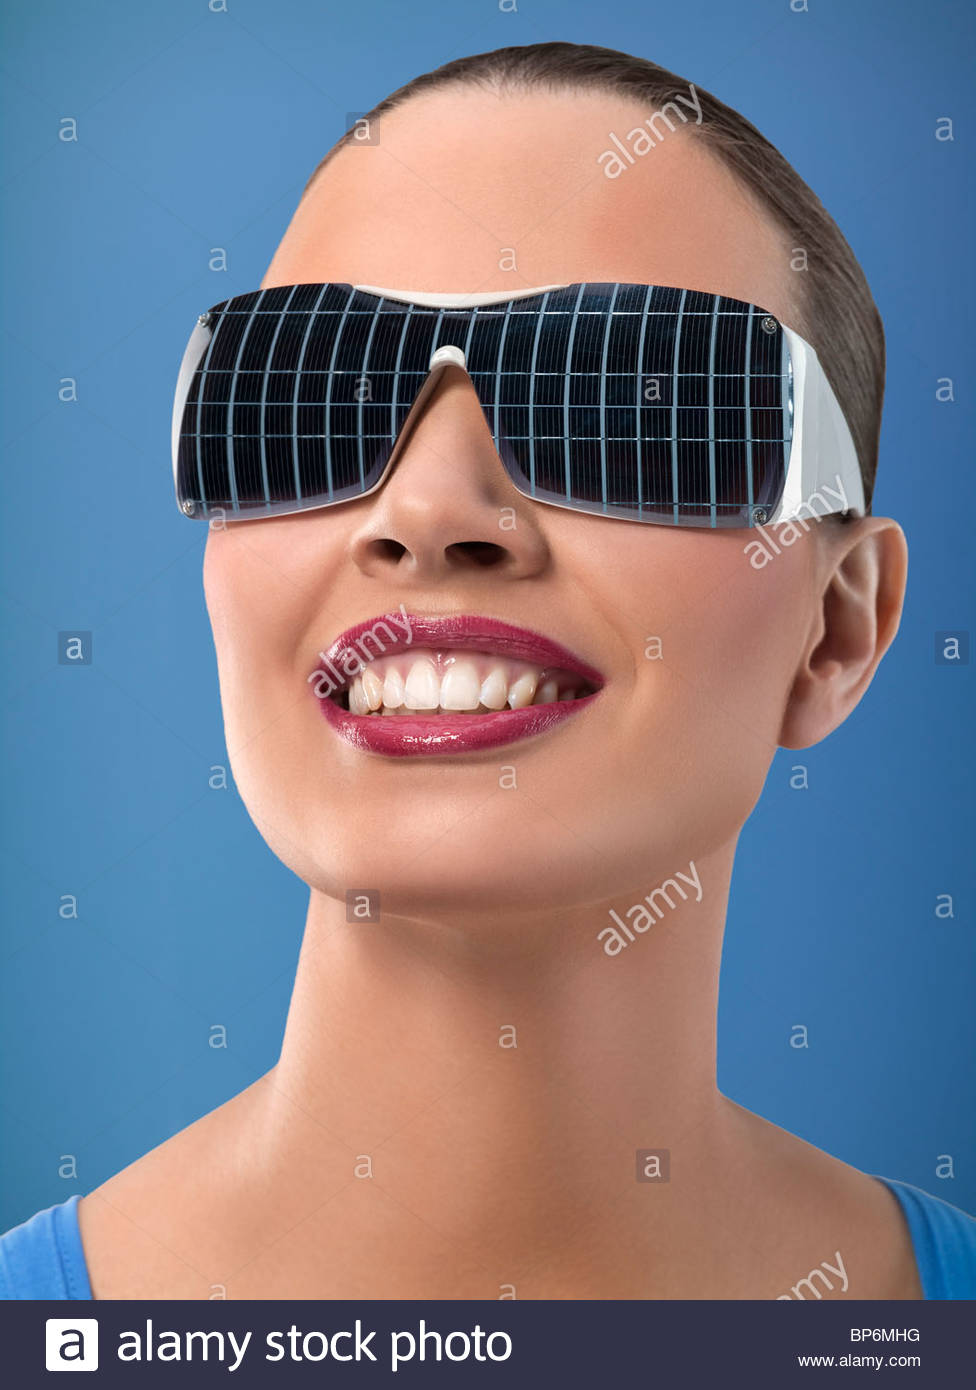 Young woman wearing sunglasses with reflection of solar panels, studio shot - Stock Image